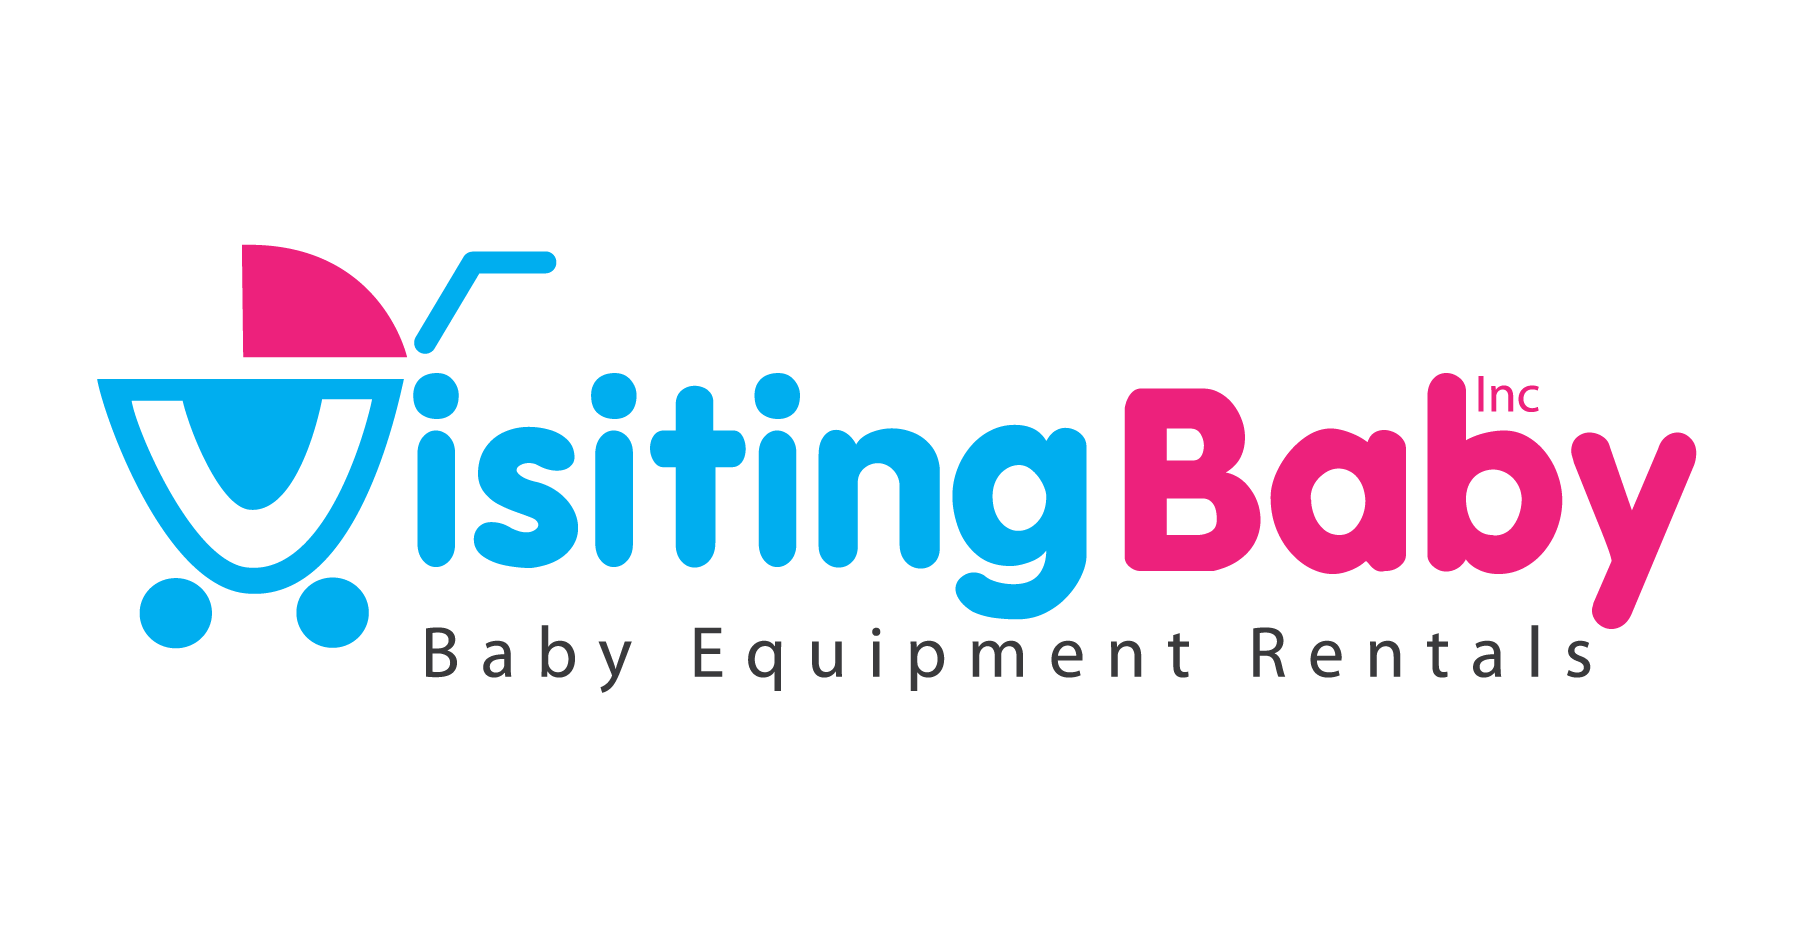 Visiting Baby - Baby Equipment Rentals